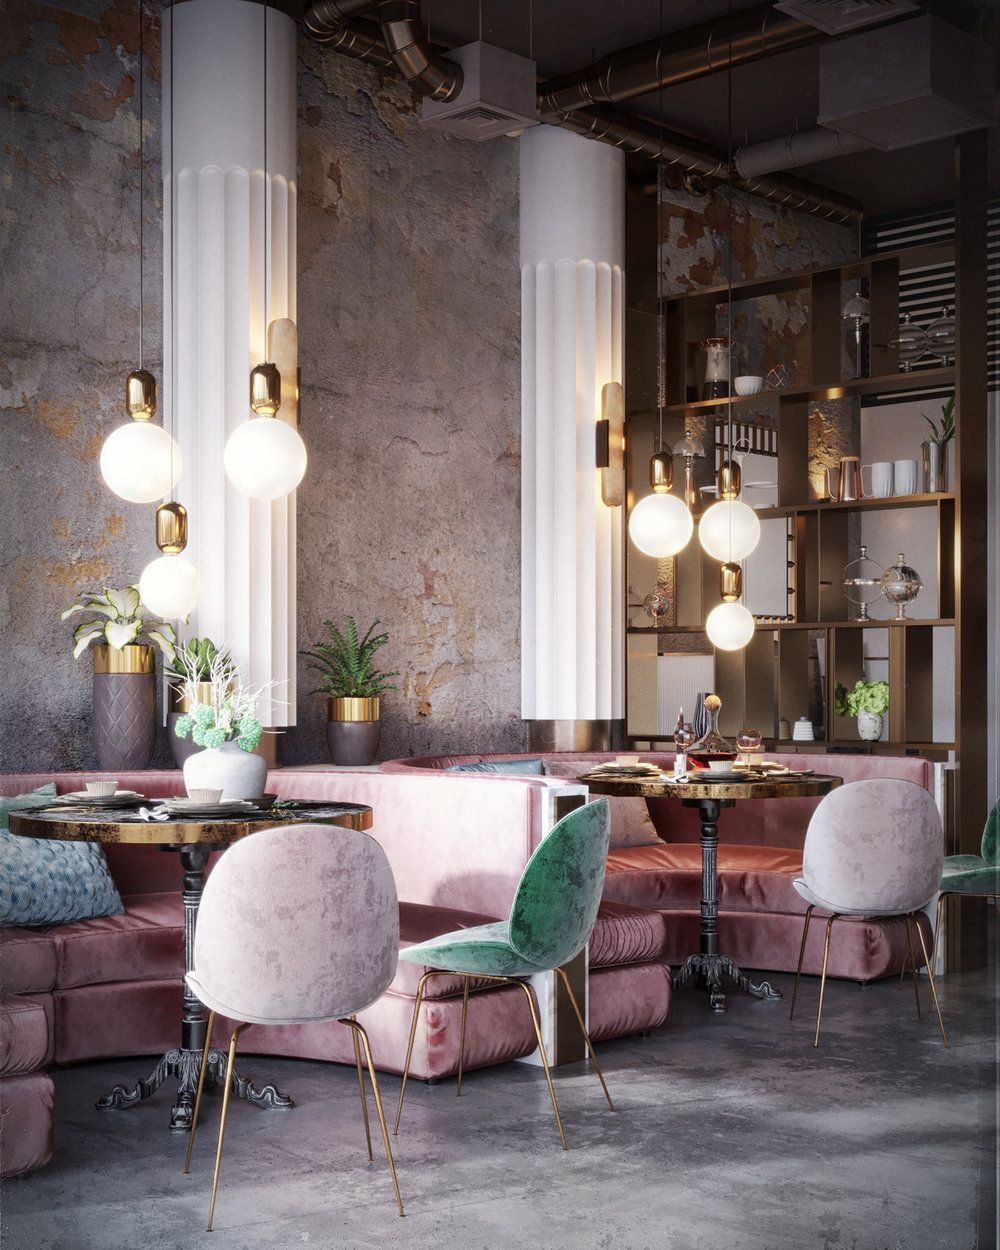 Gorgeous Restaurant Interior : Wanderlusting contemporary restaurant design so pink